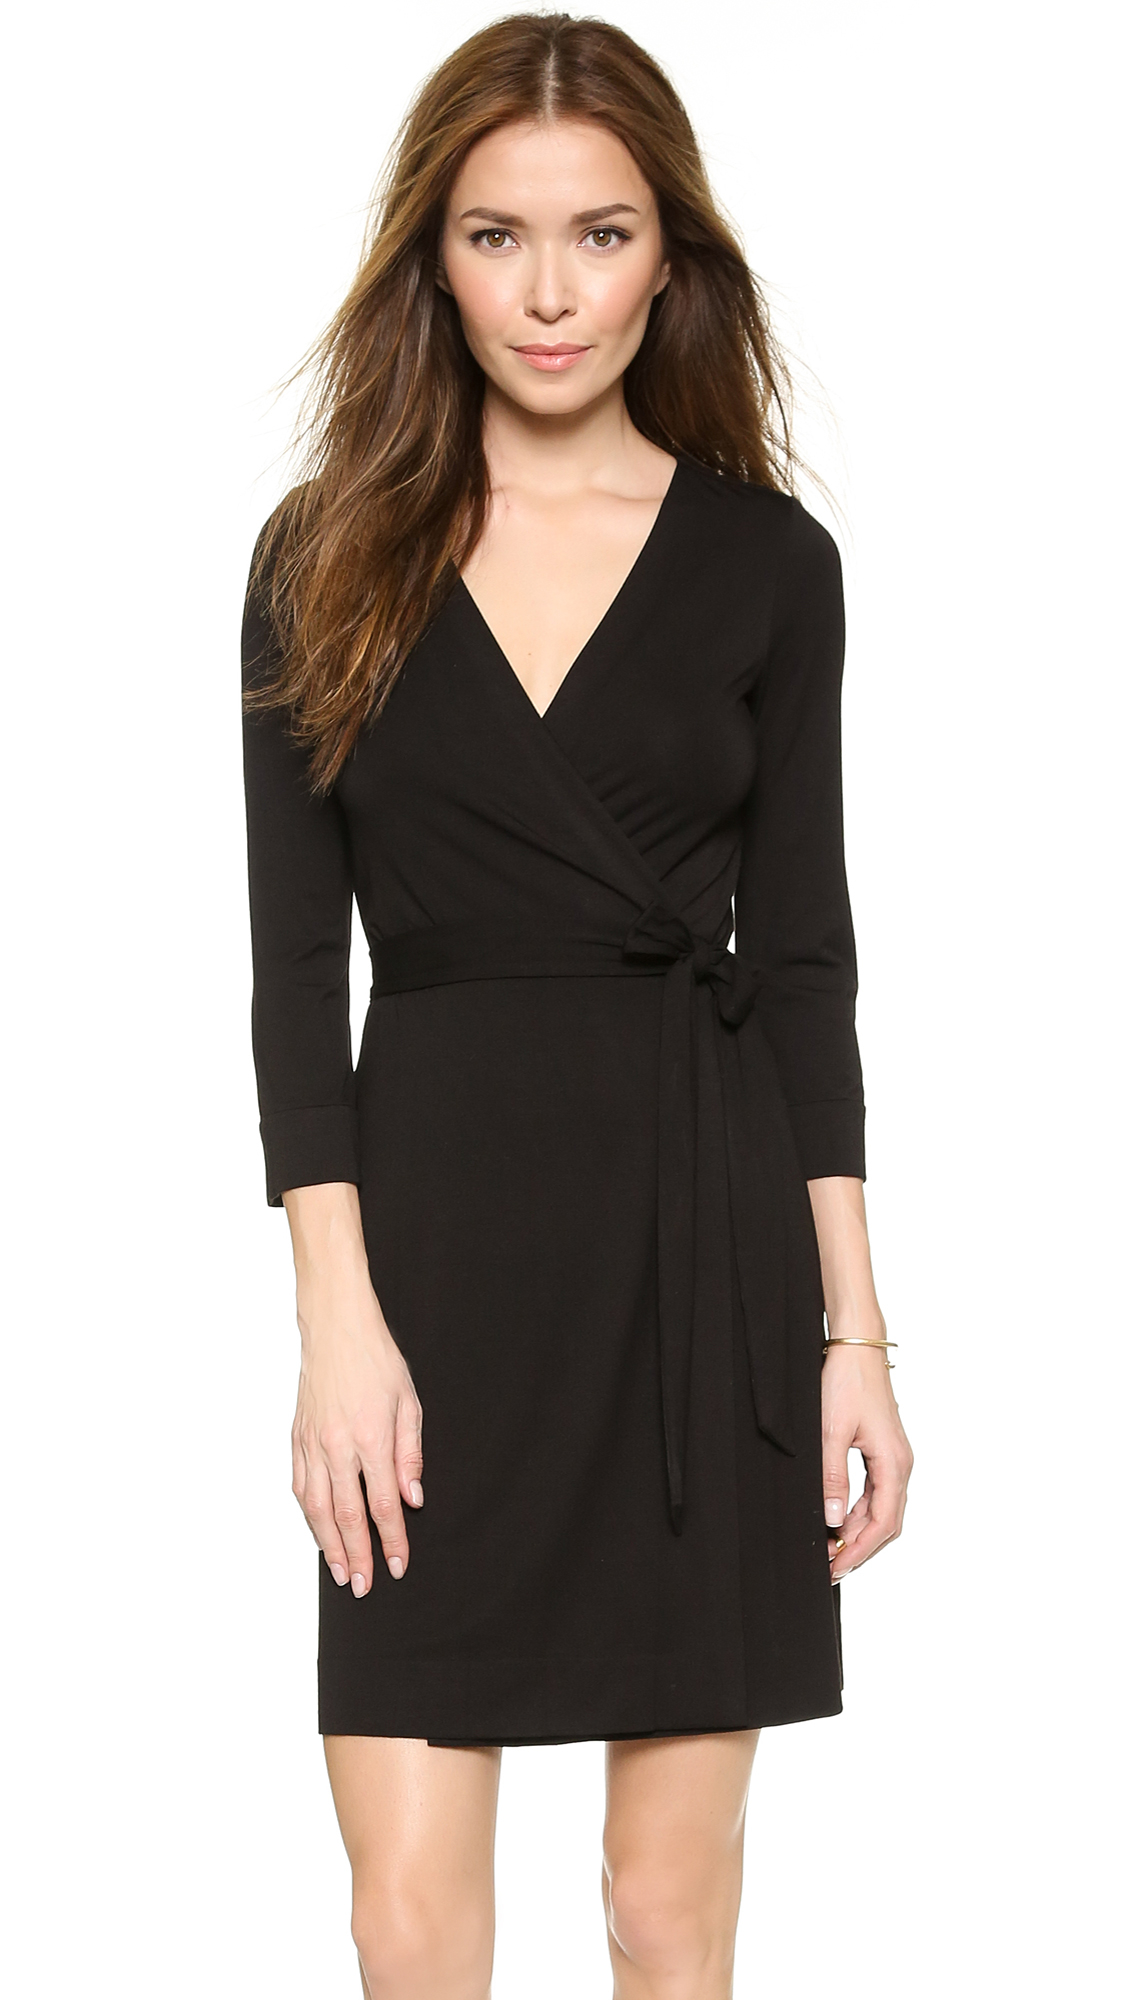 Diane von furstenberg julian mini wrap dress in black lyst for Diane von furstenberg clothes